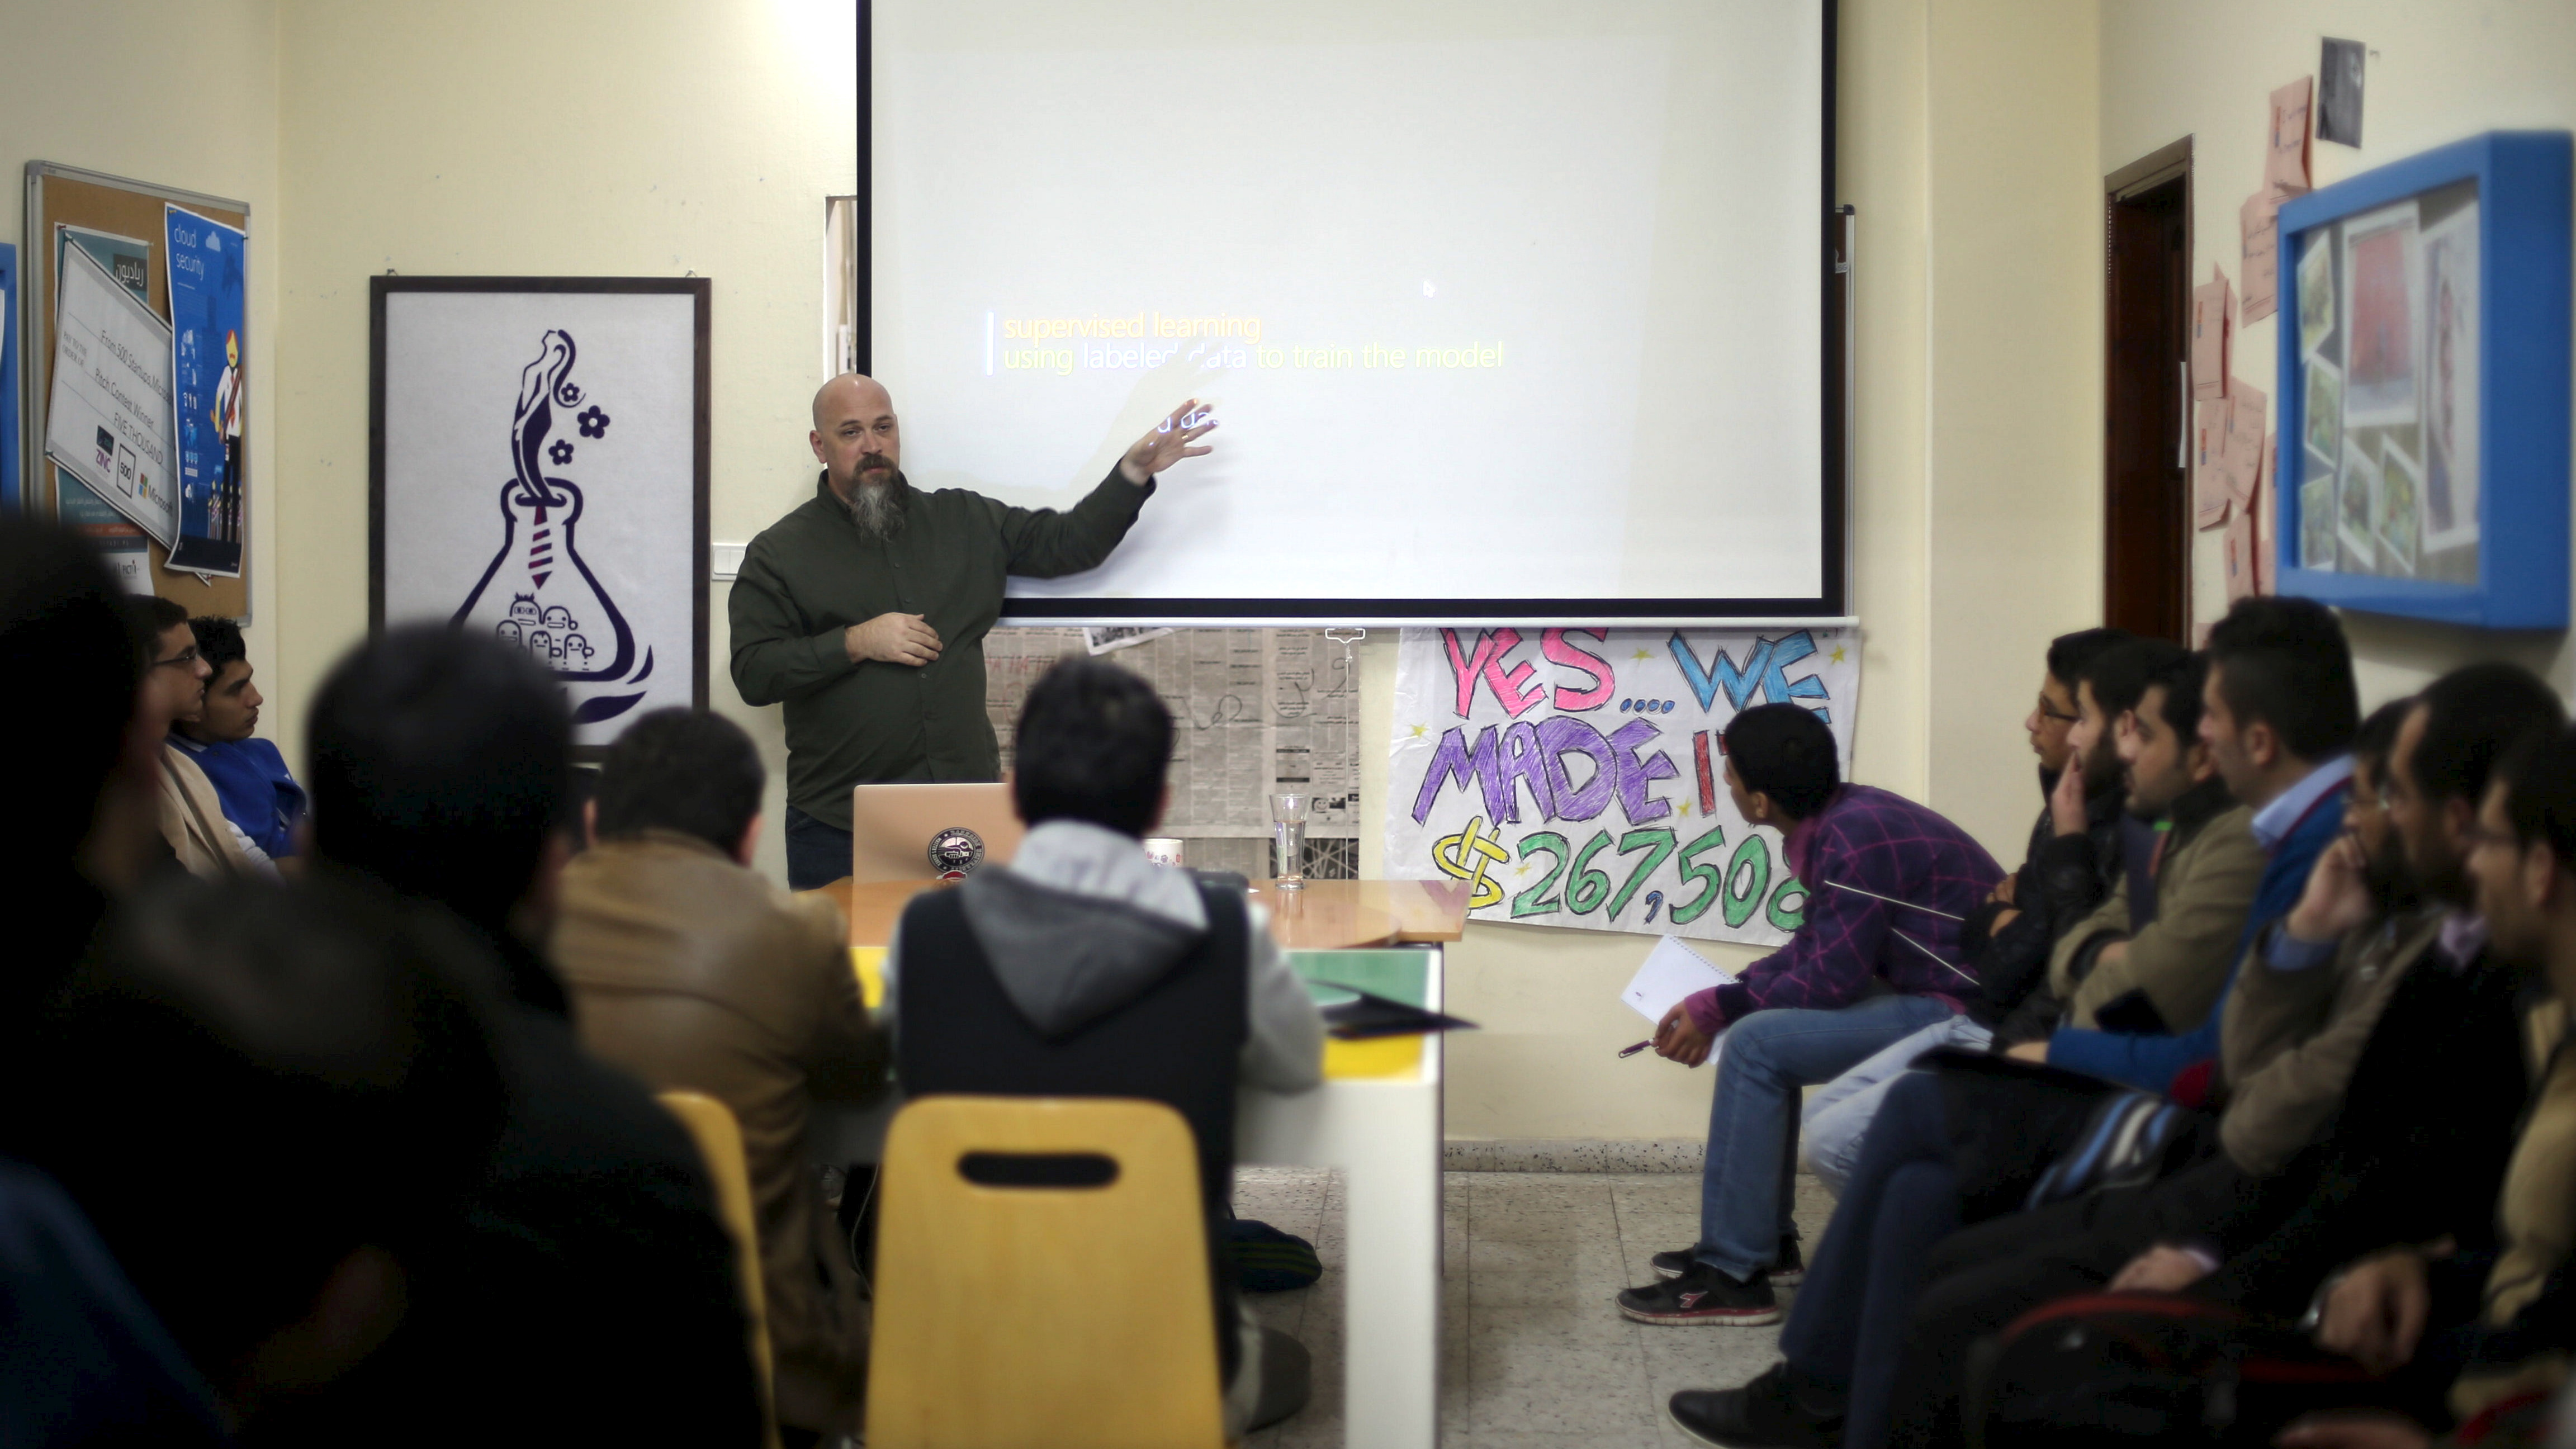 google tel aviv office 26 an adviser from microsoft provides guidance to young palestinian entrepreneurs at gaza sky geeks office the googlebacked is helping palestinians bypass